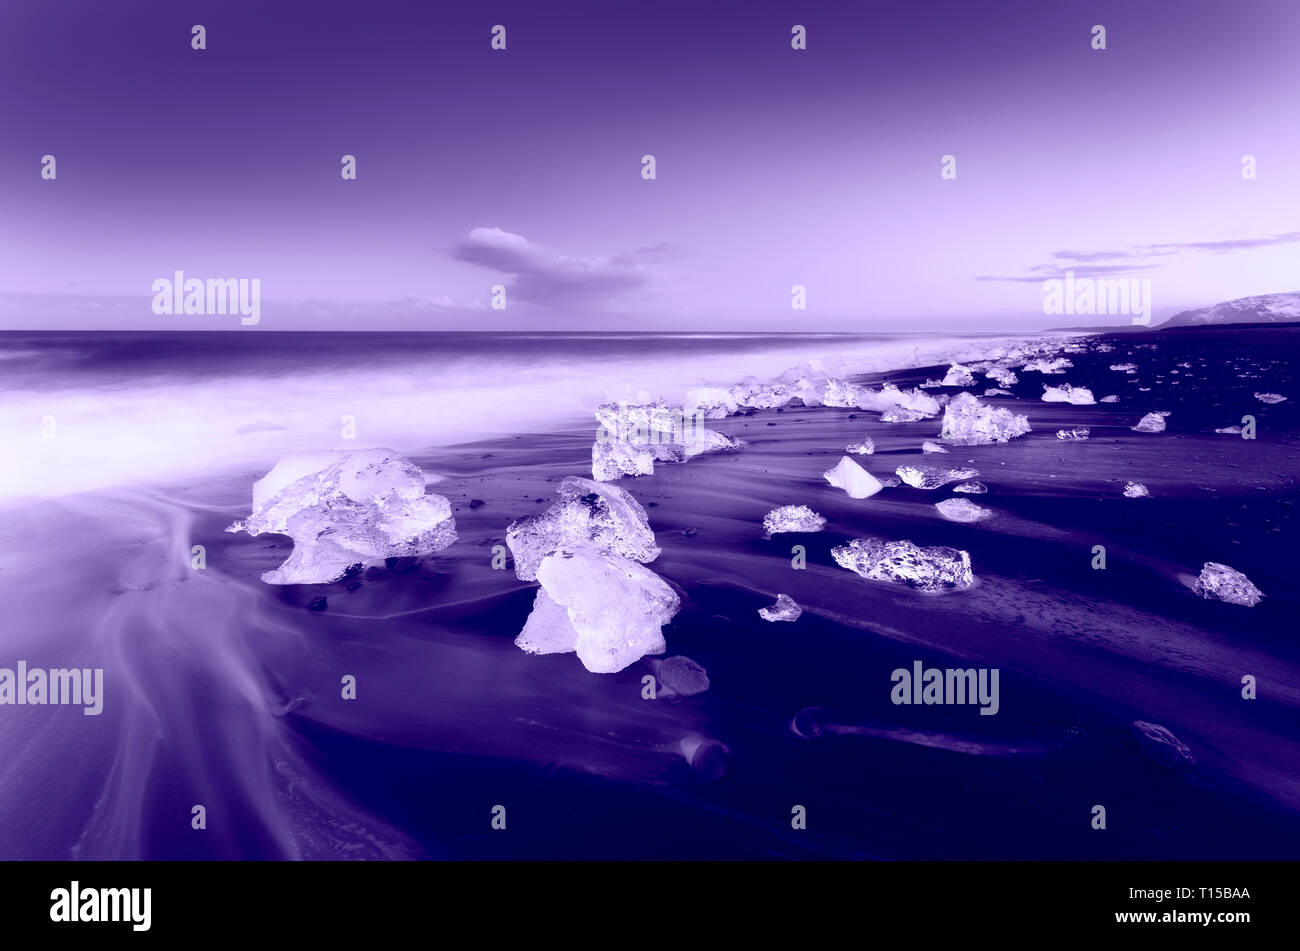 Jokulsarlon beach, mini Ice bergs, South Iceland. - Stock Image